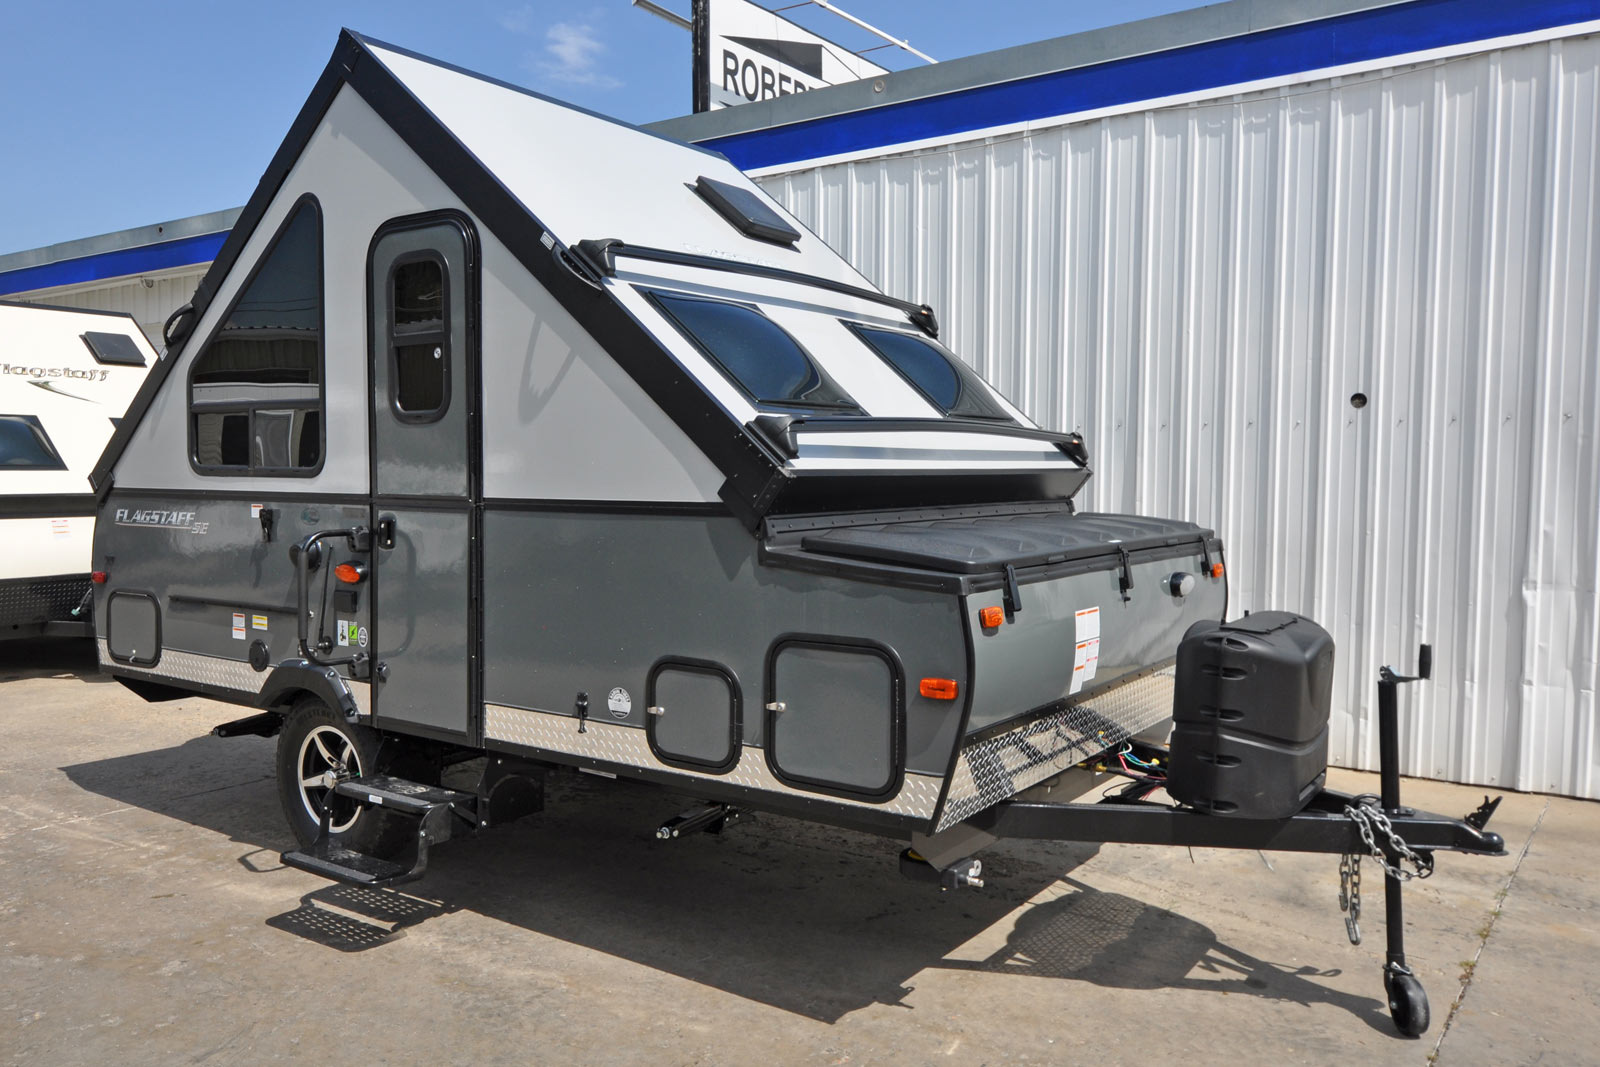 Flagstaff T12rbsse Camping Trailer Roberts Sales